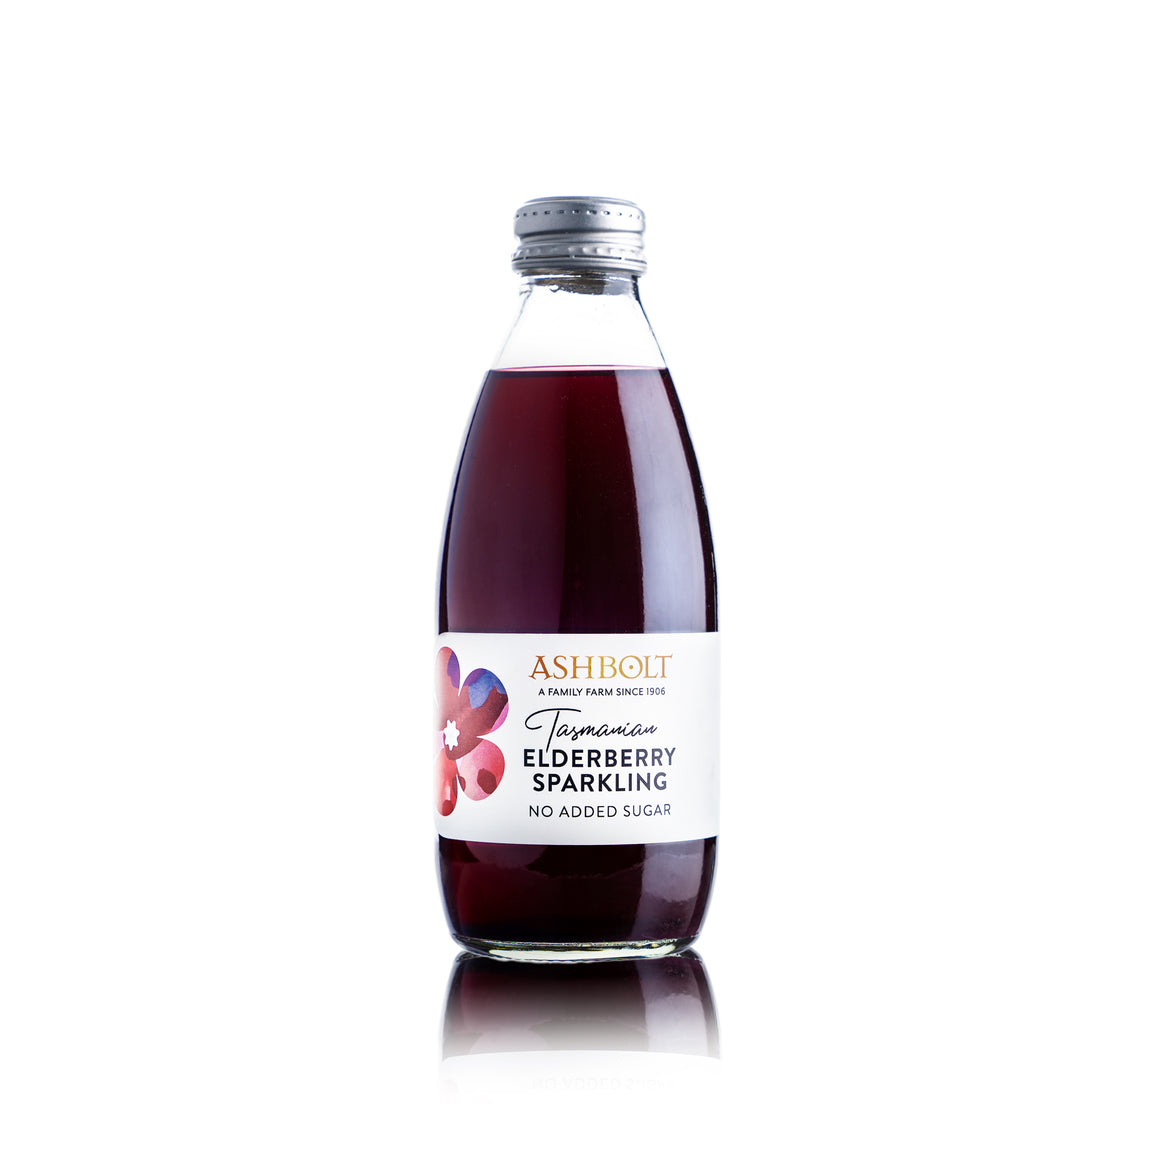 NEW - No Added Sugar - Elderberry Sparkling by the case